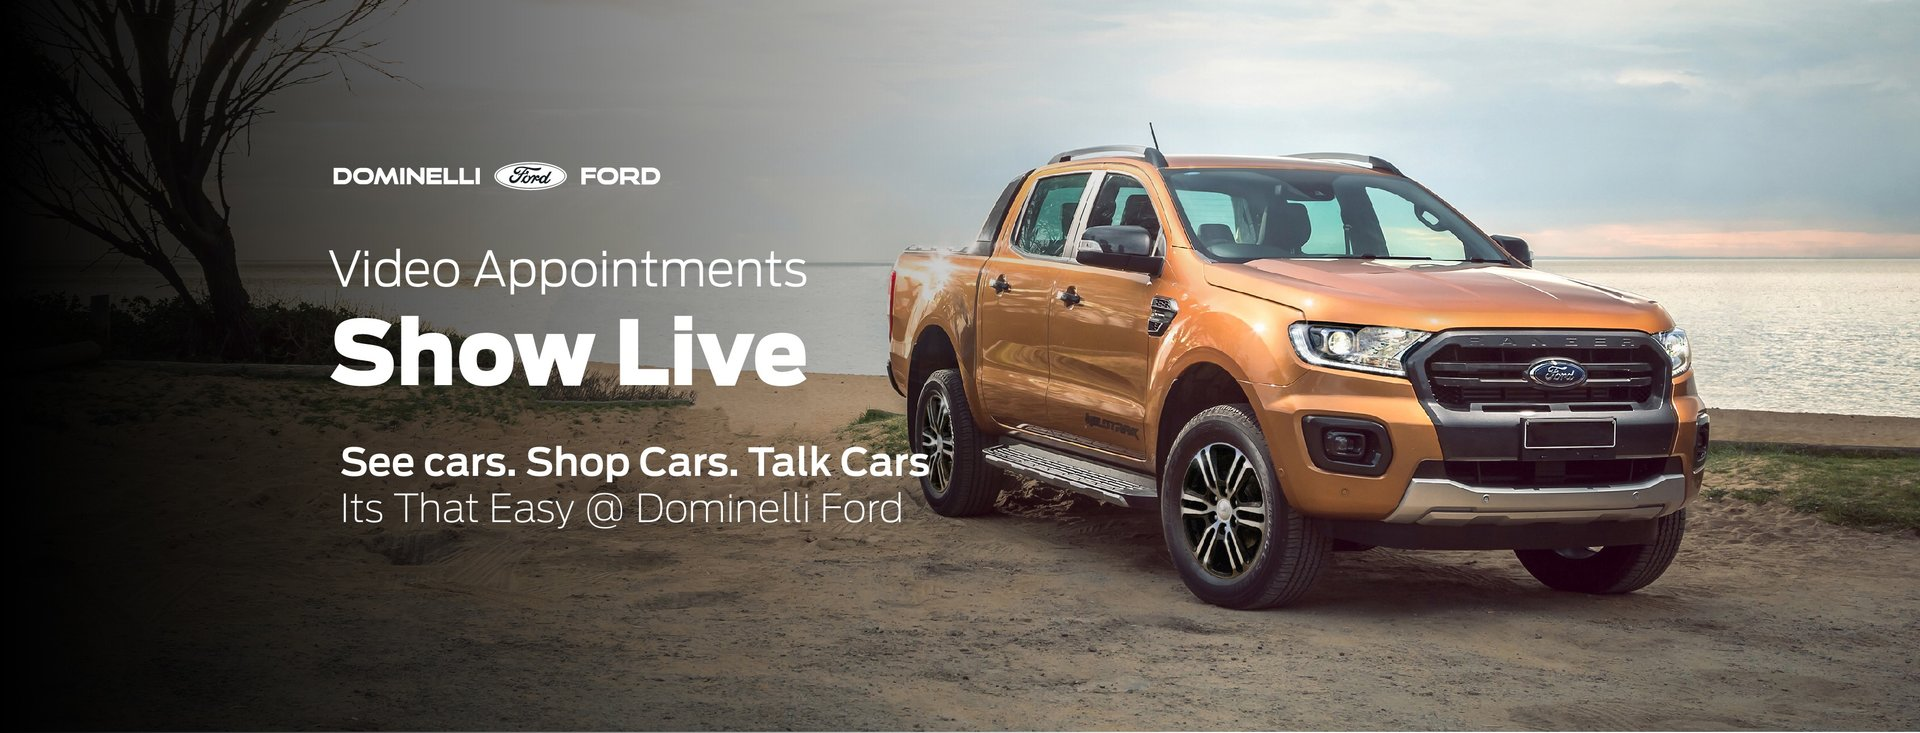 Buy Online with Dominelli Ford